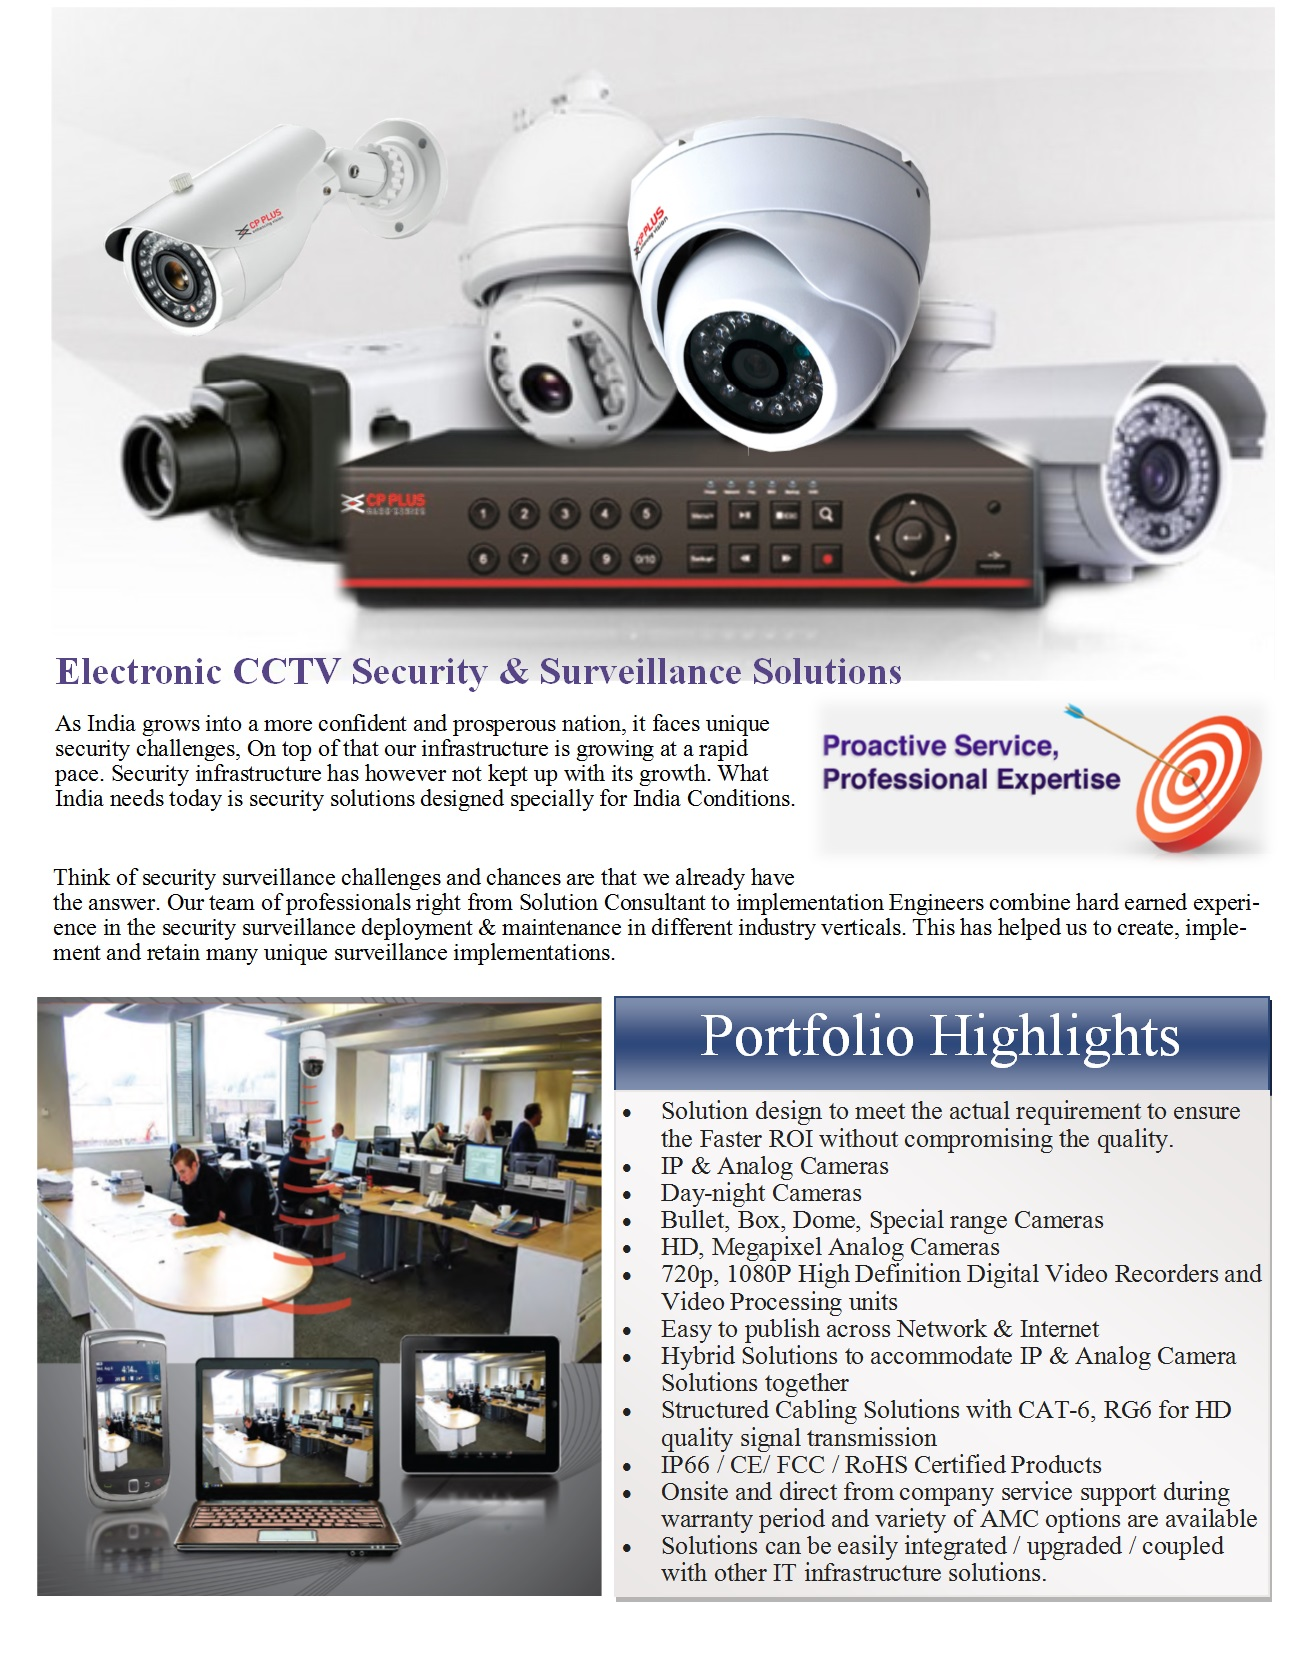 Physical Security Cctv Solutions Integrating Values